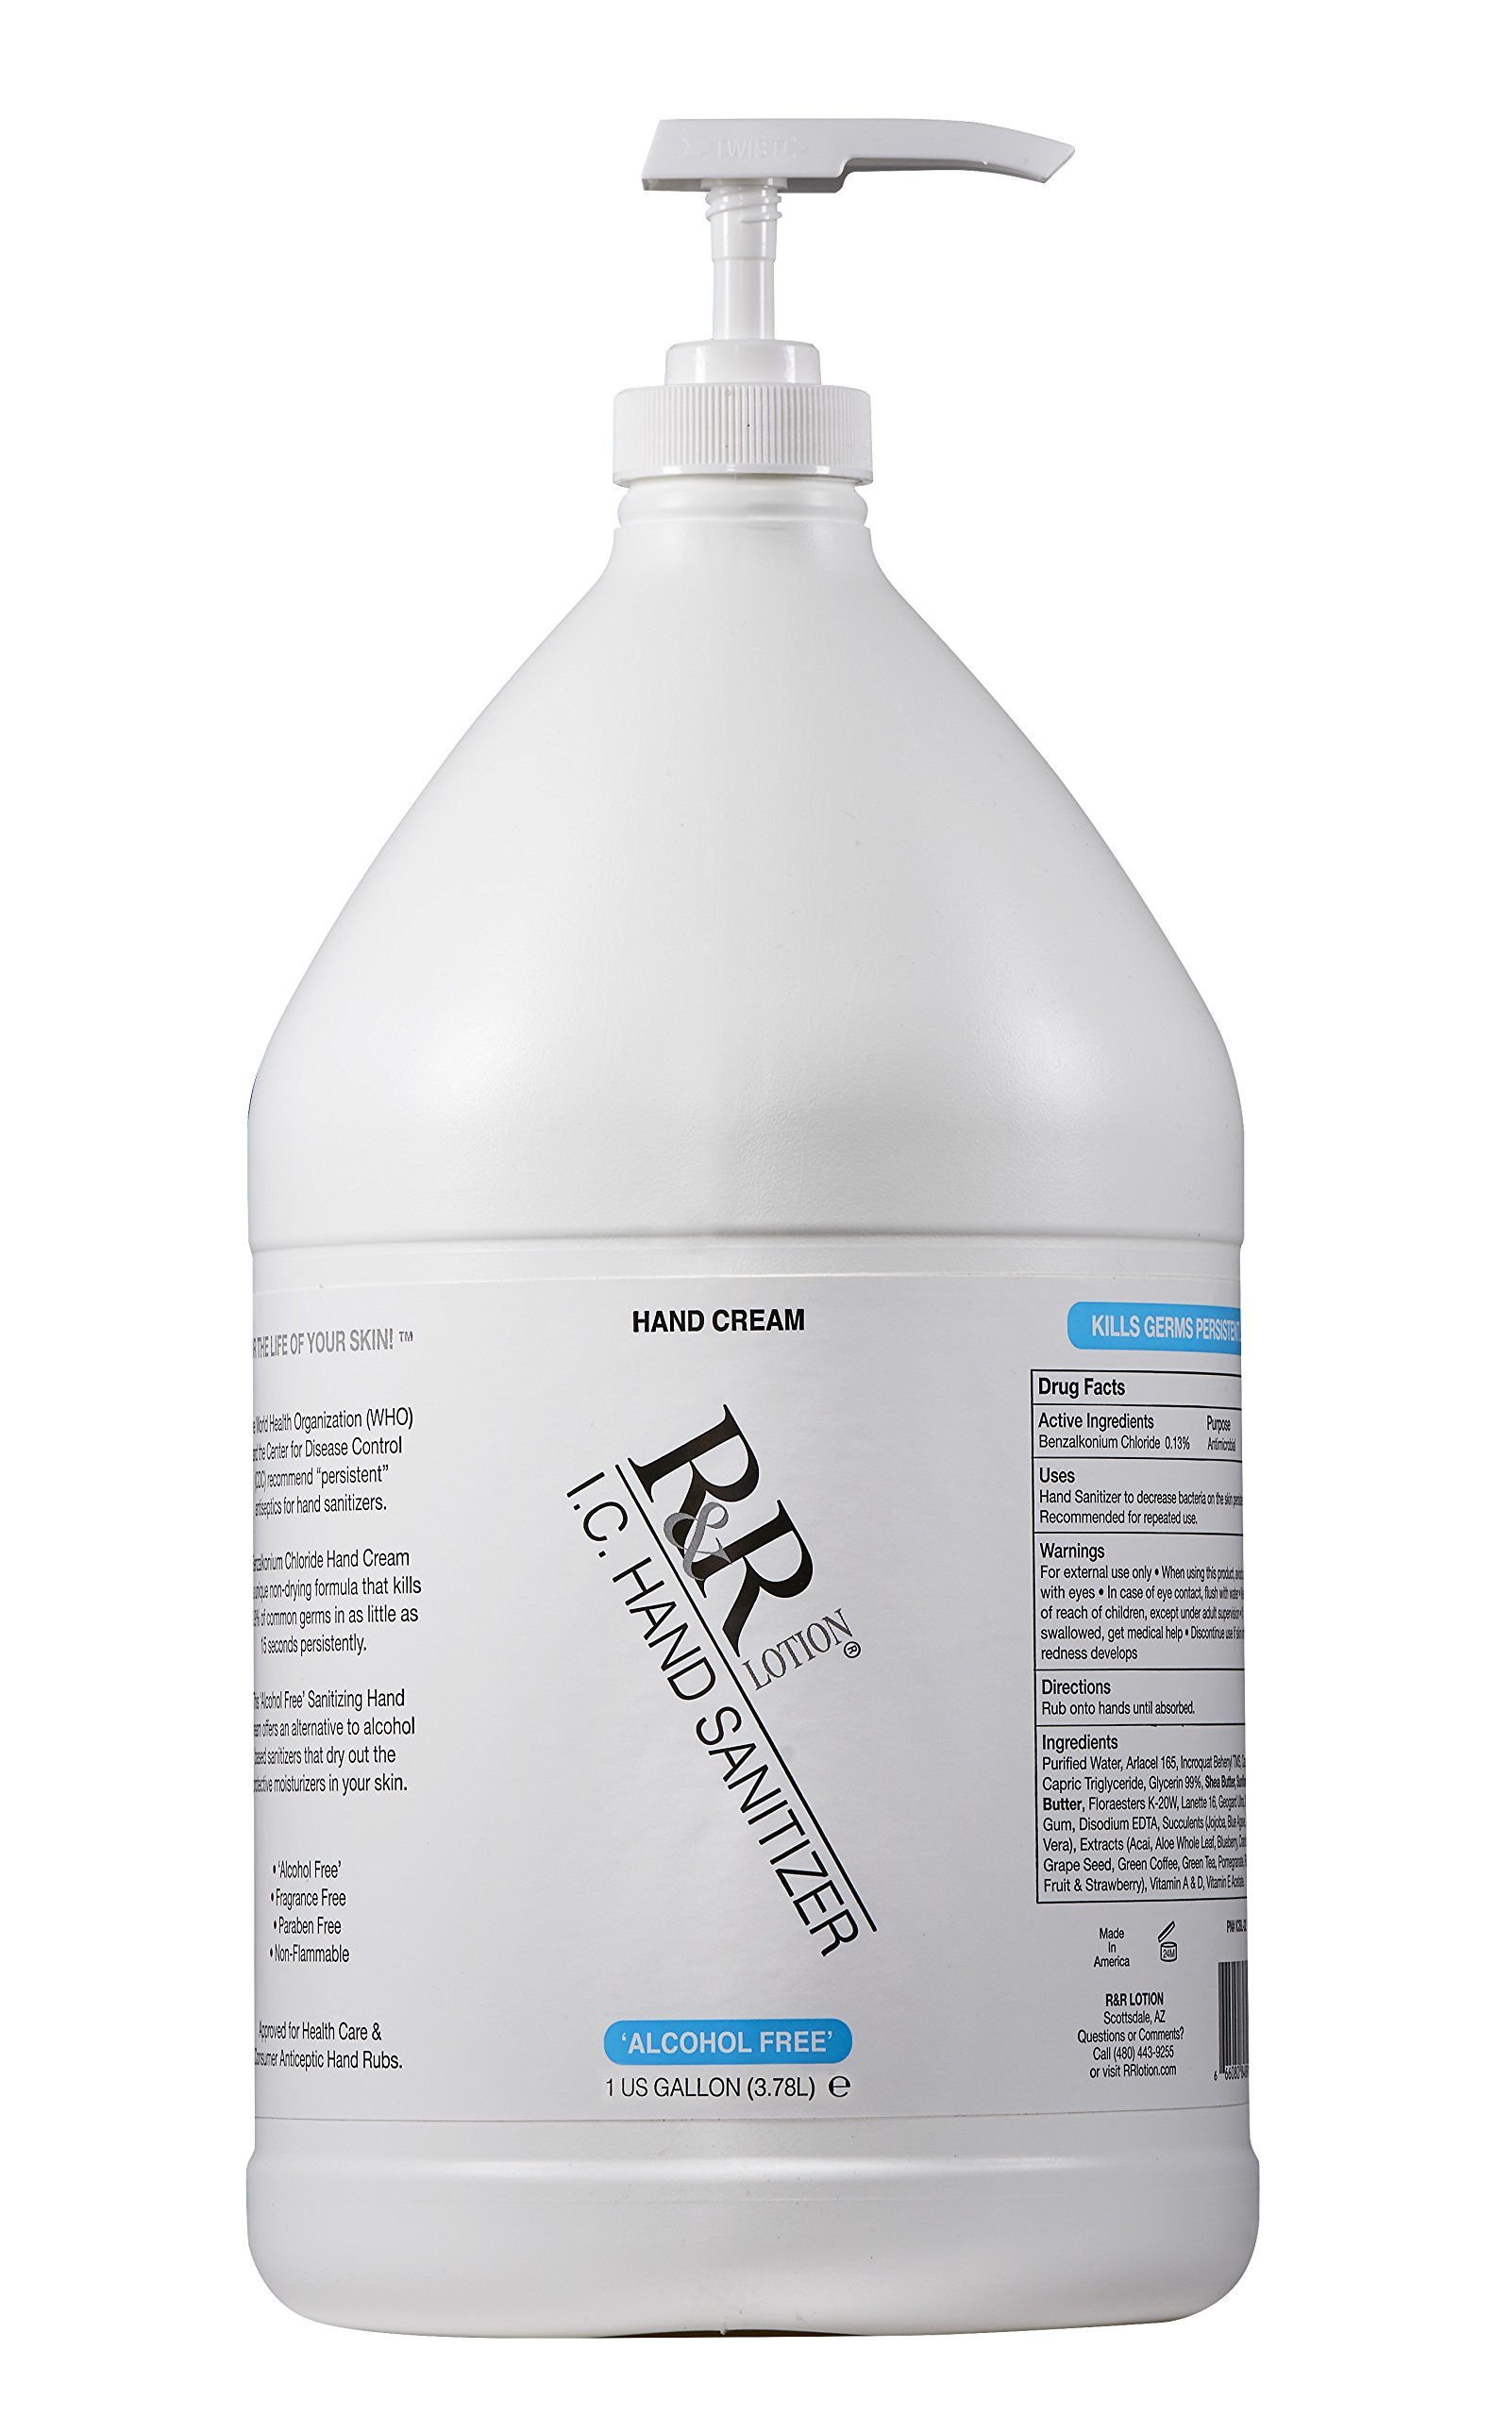 Hand Sanitizer Alcohol-Free Re-Moisturizing Cream Using BZK to Kill 99.99% of Germs Persistently. Re-moisturizes Using Sunflower & Shea Butter, 14 Botanicals and Succulents Along with VIT. 128oz by R&R Lotion